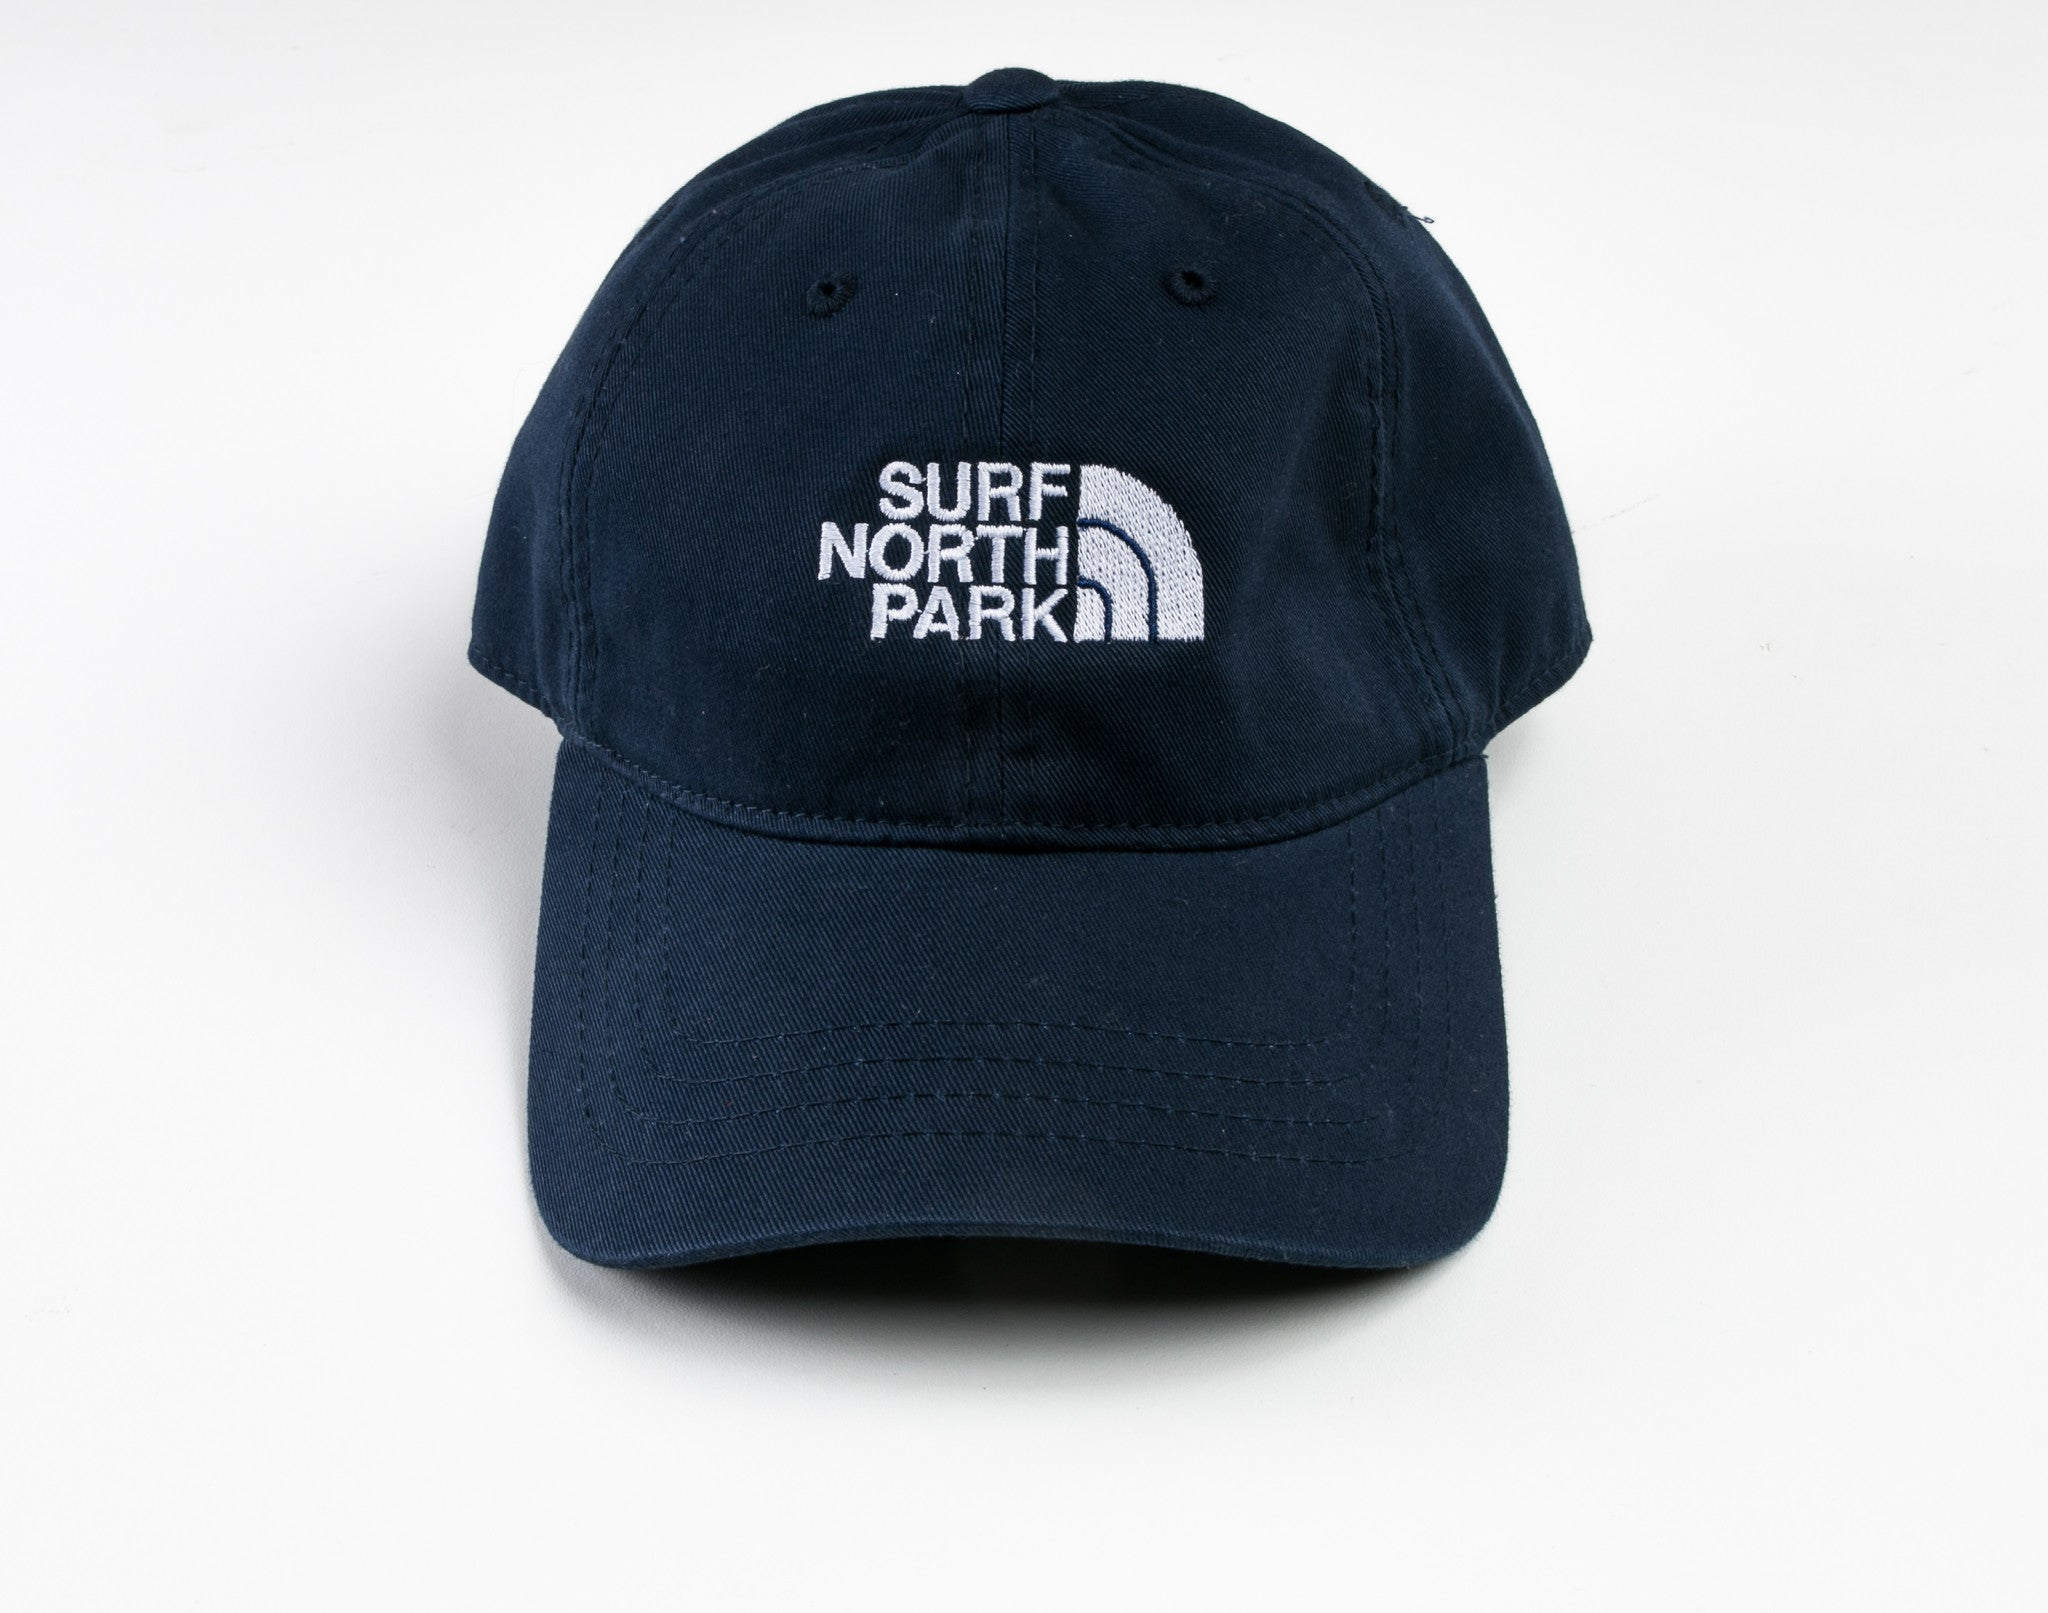 Aloha Beach Club - North Park Polo Cap Navy - Aloha Beach Club